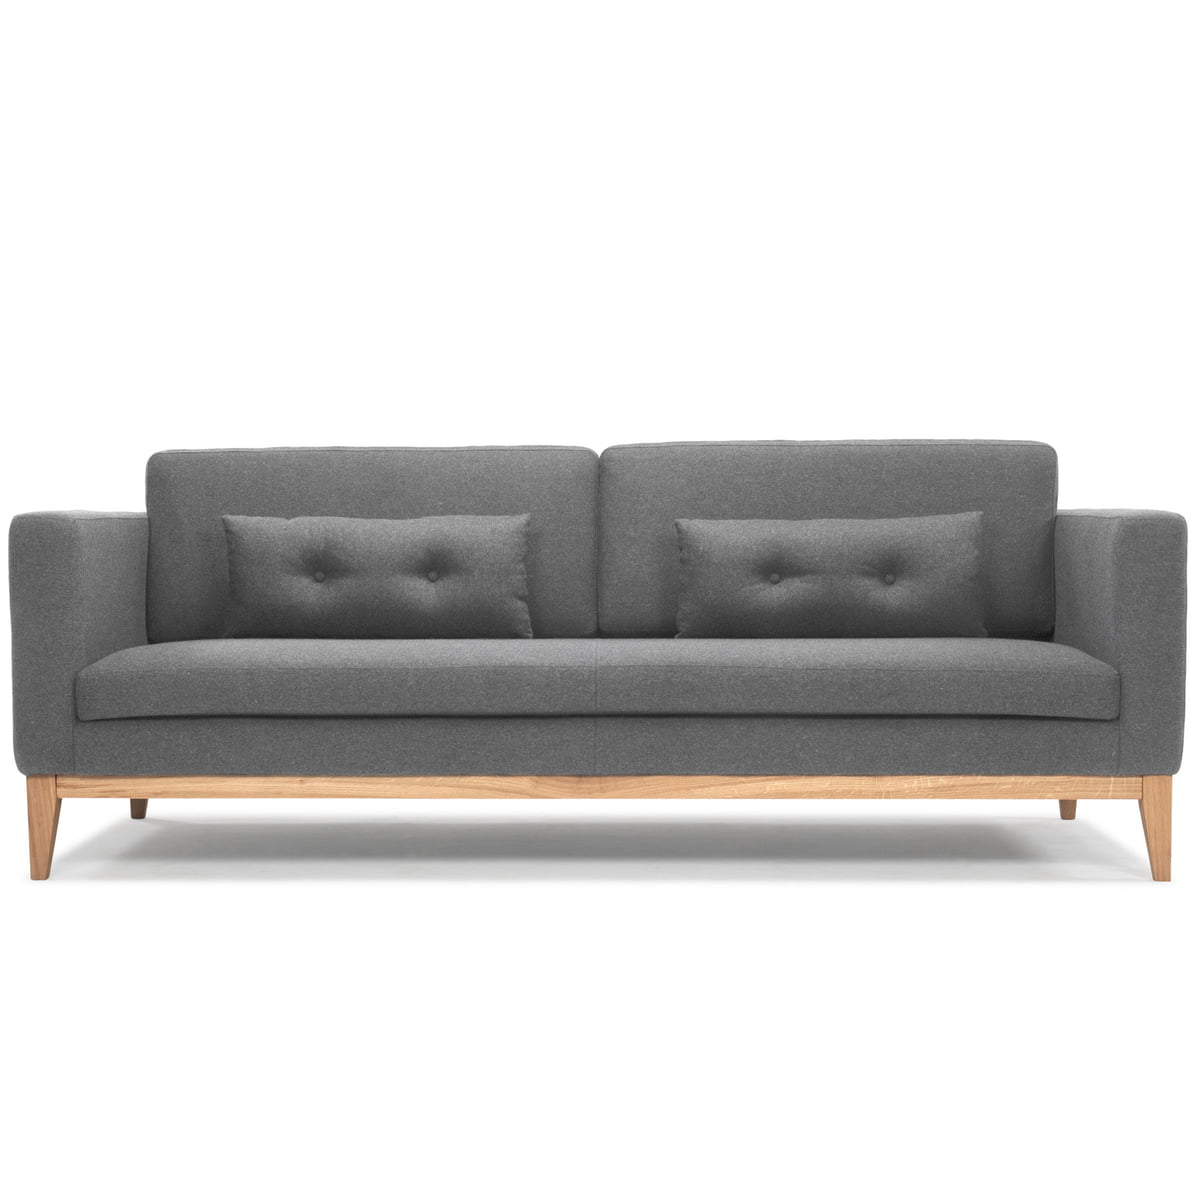 ... The Day Sofa By Design House Stockholm In Light Grey ...